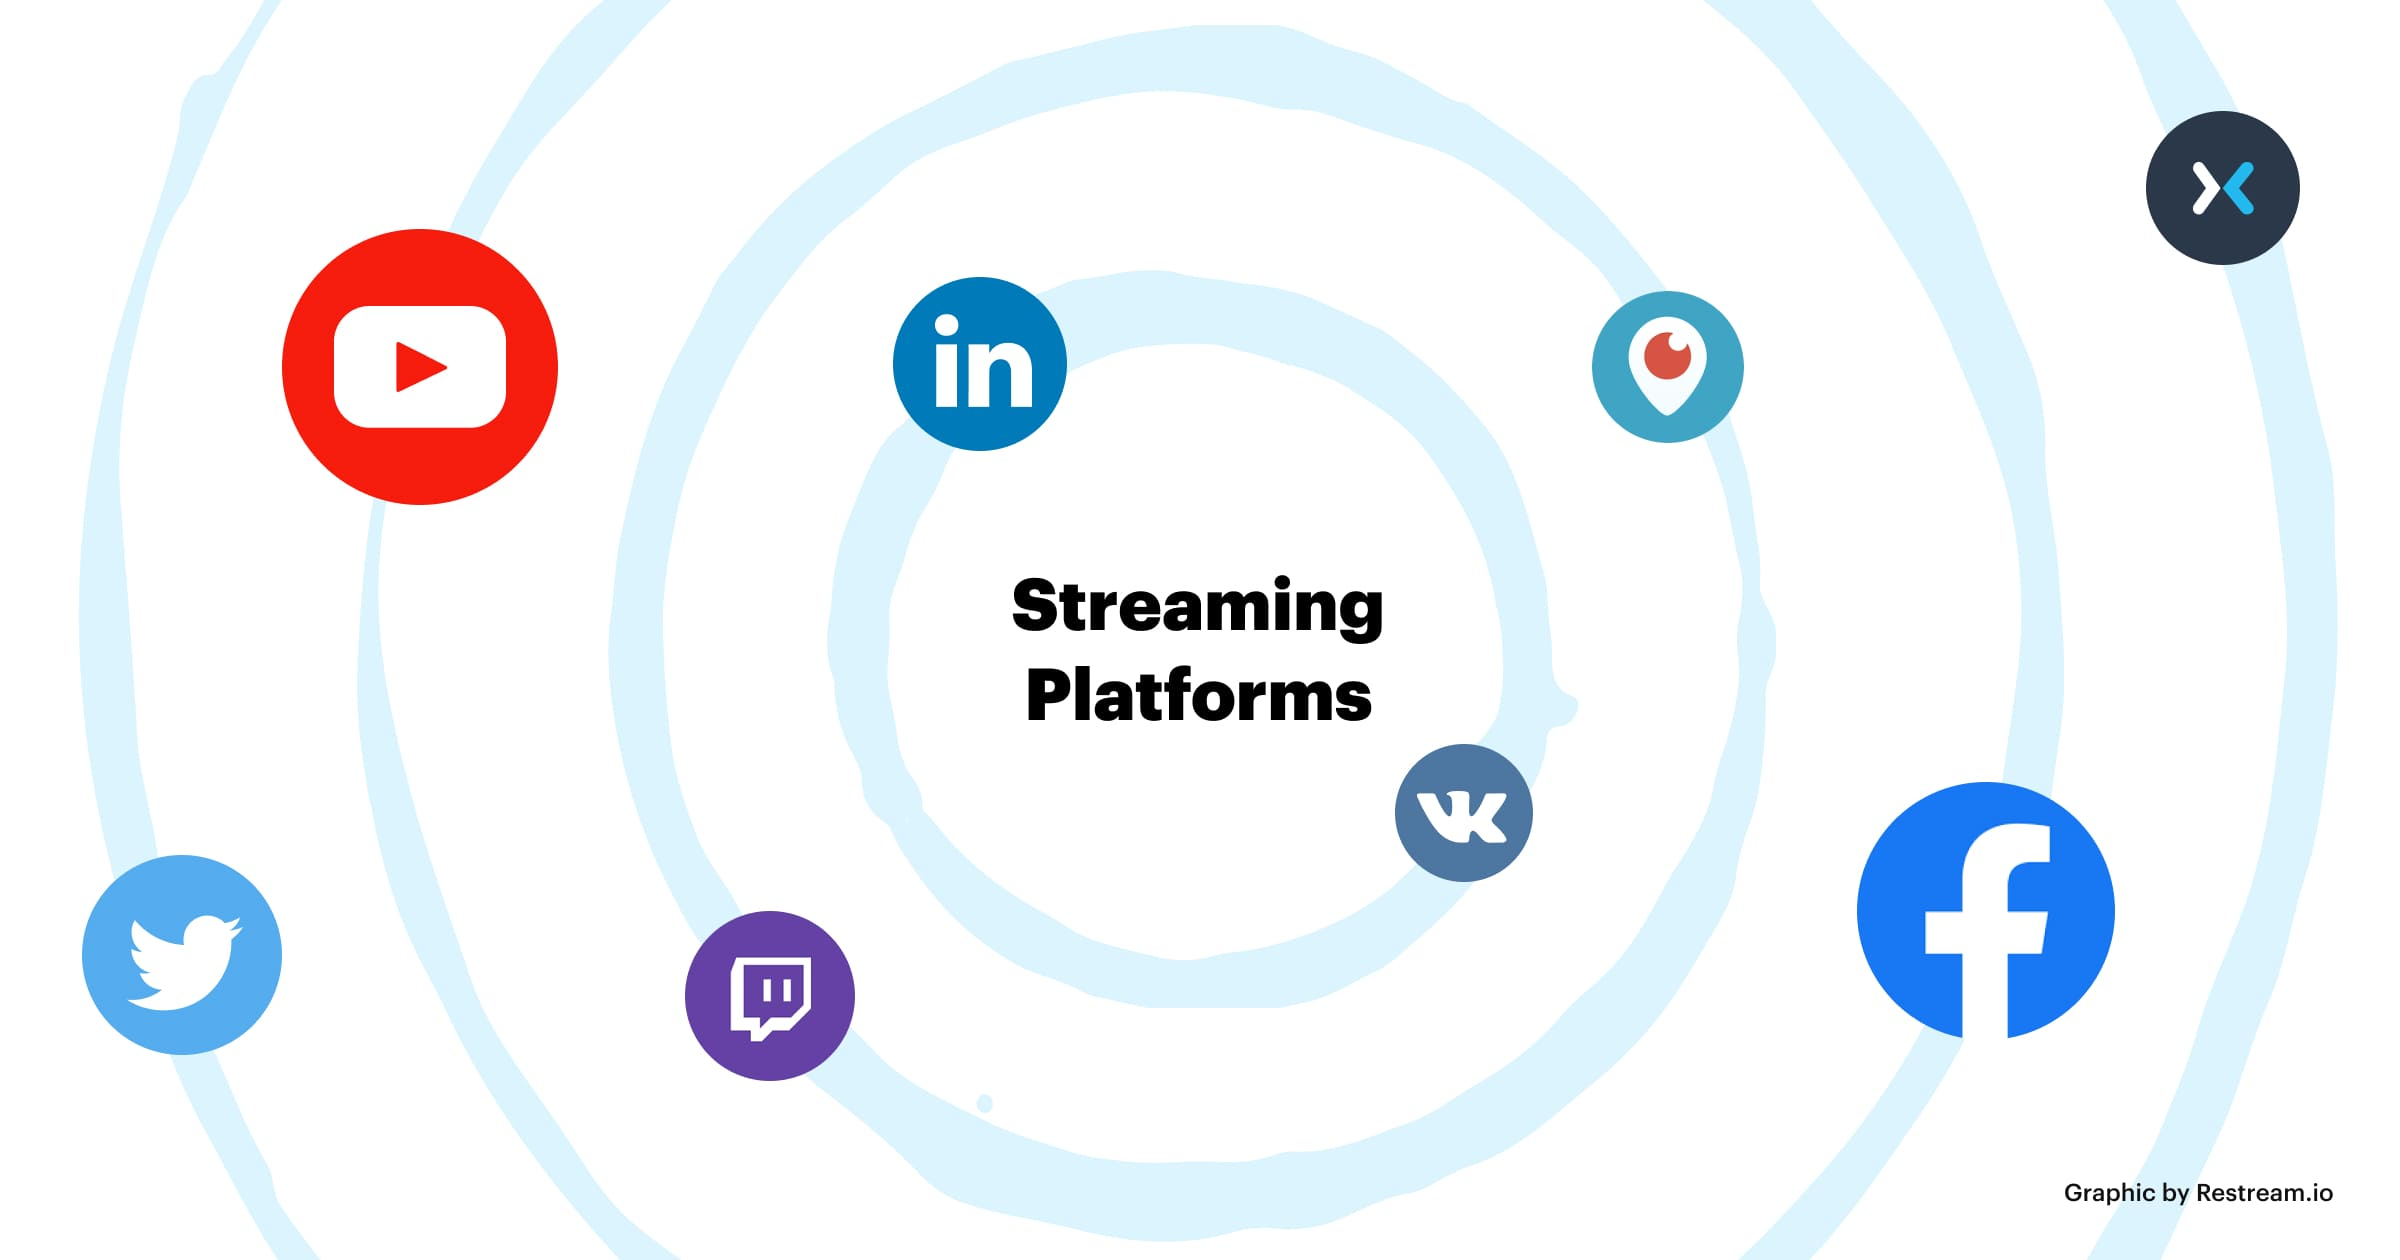 Live streaming platforms: YouTube, LinkedIn, Periscope, Mixer, VK, Facebook, Twitch, Twitter